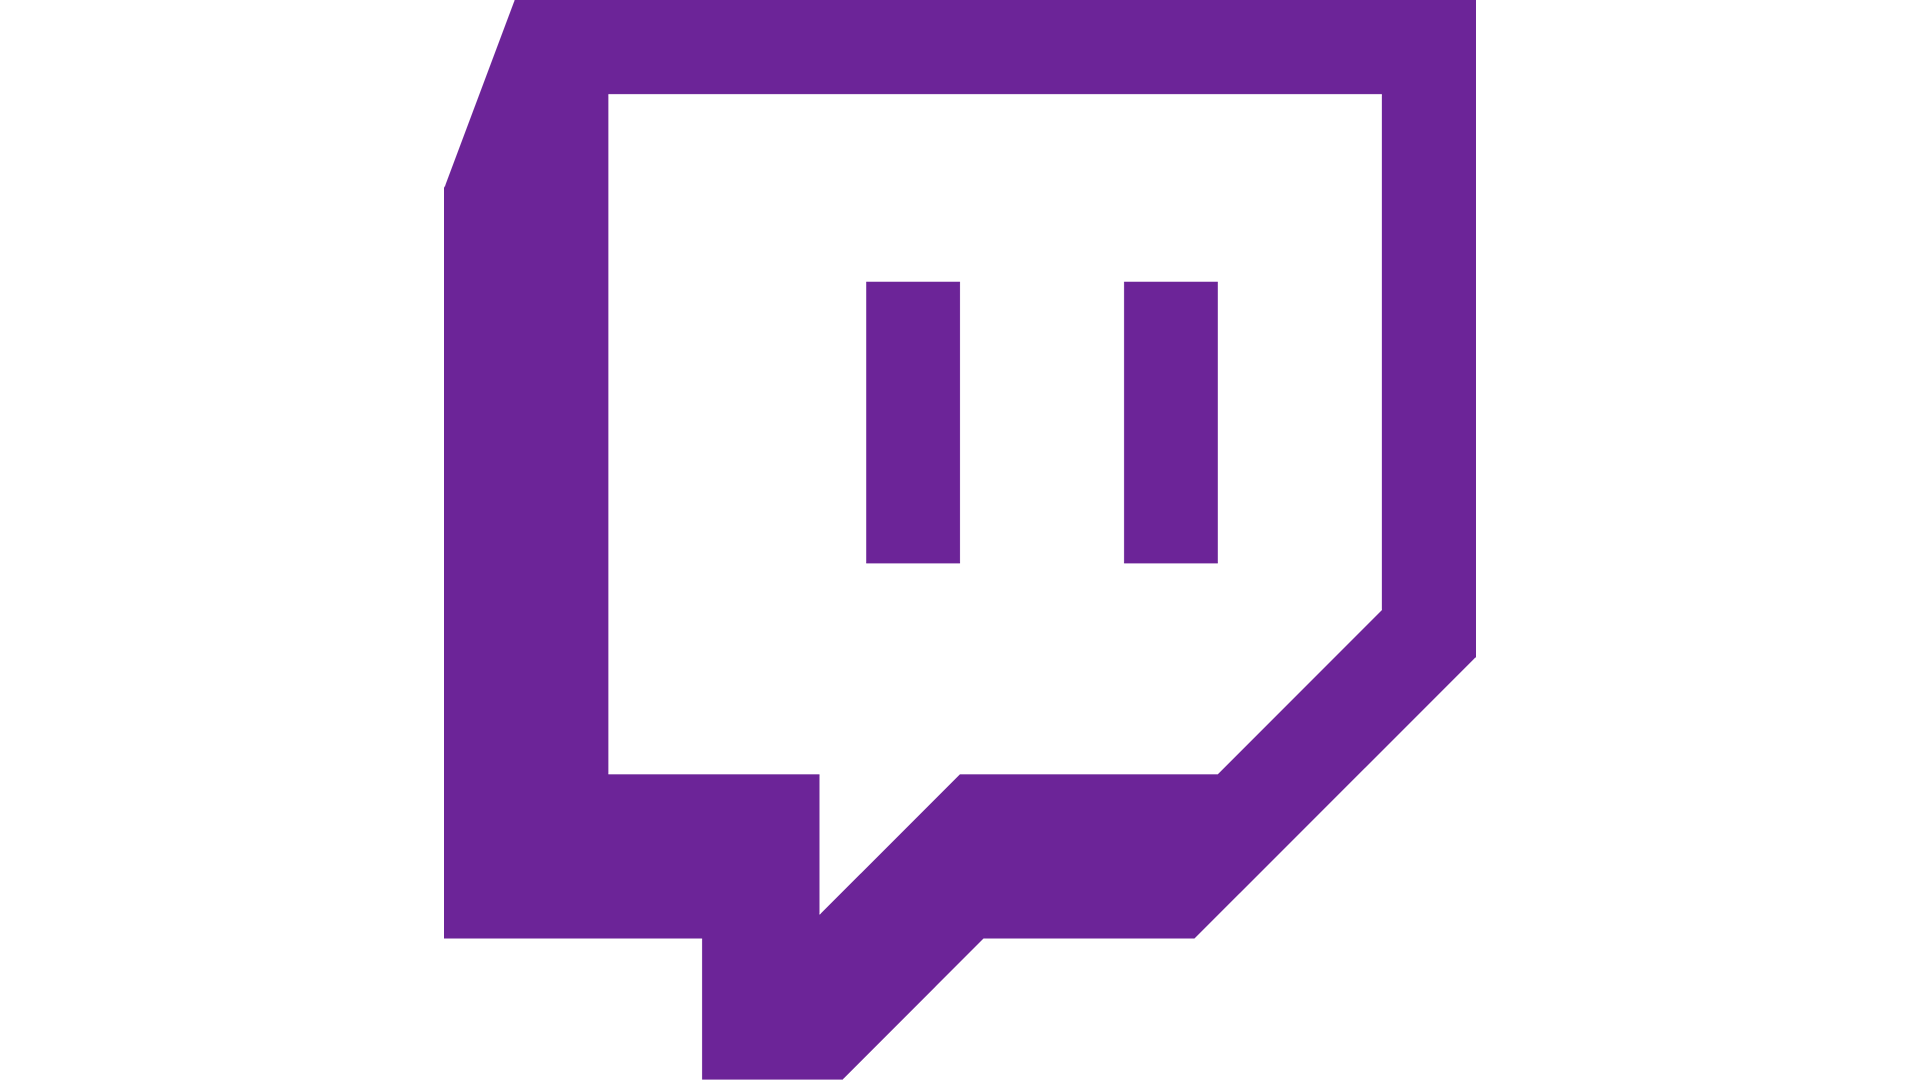 Twitch logo png transparent background. Images free download